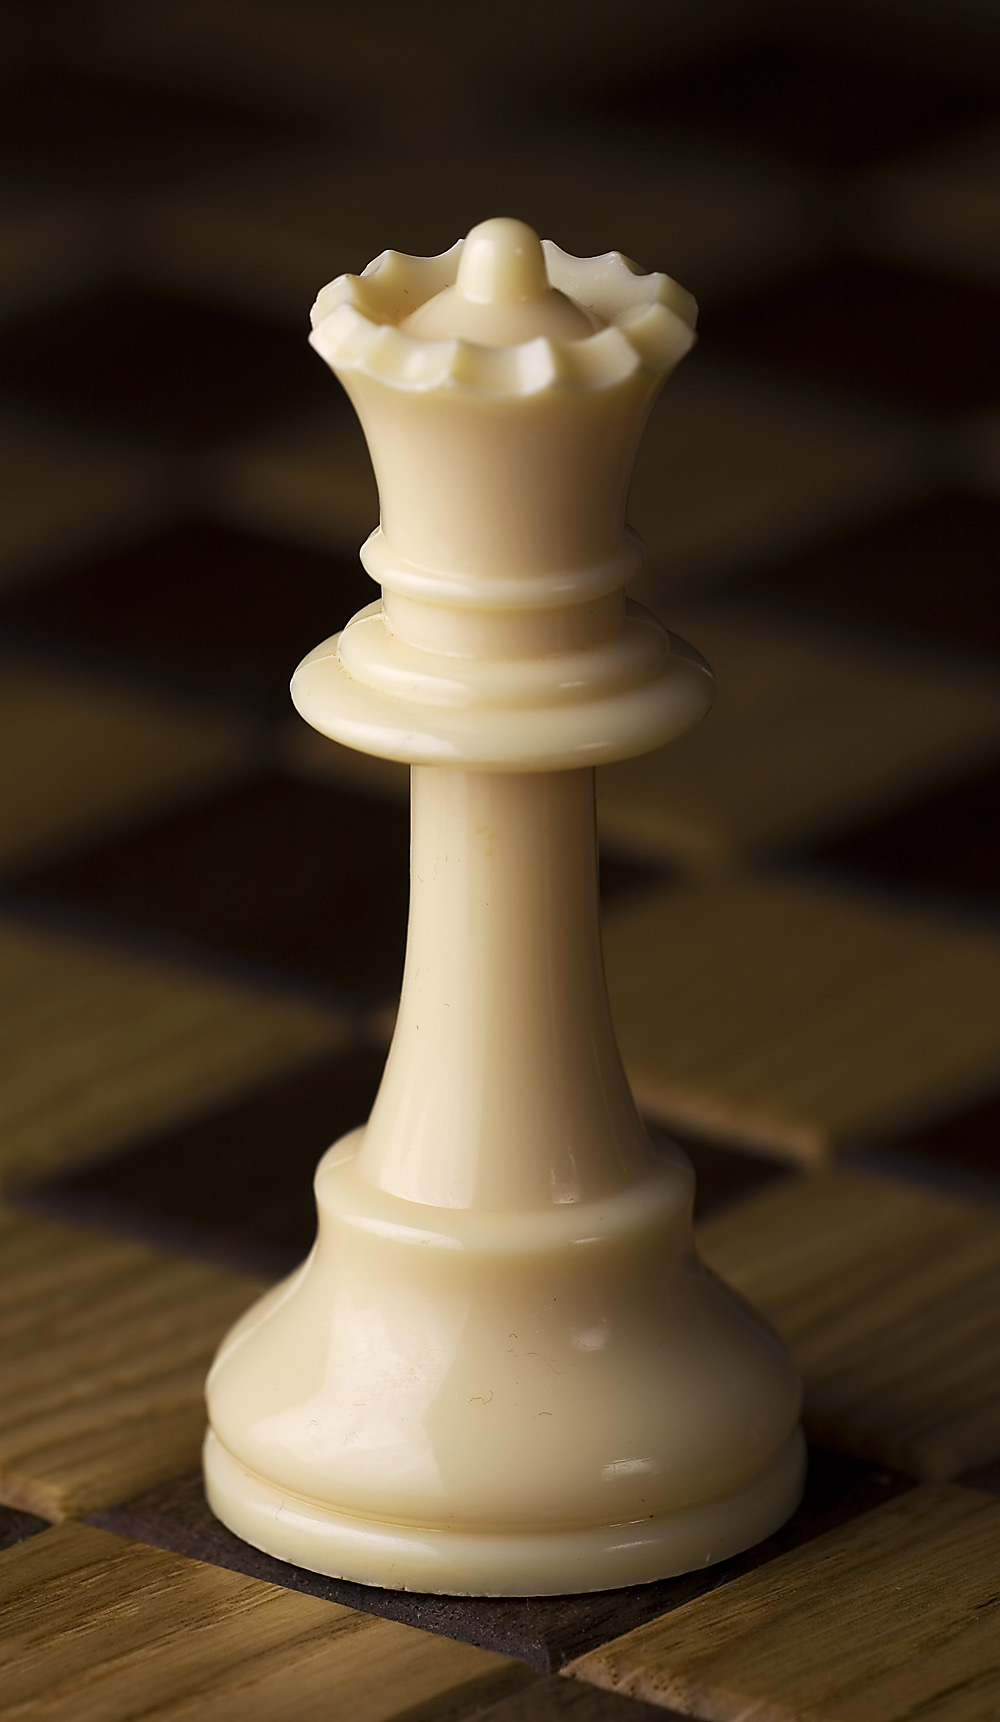 Description Chess piece - White queen.jpg